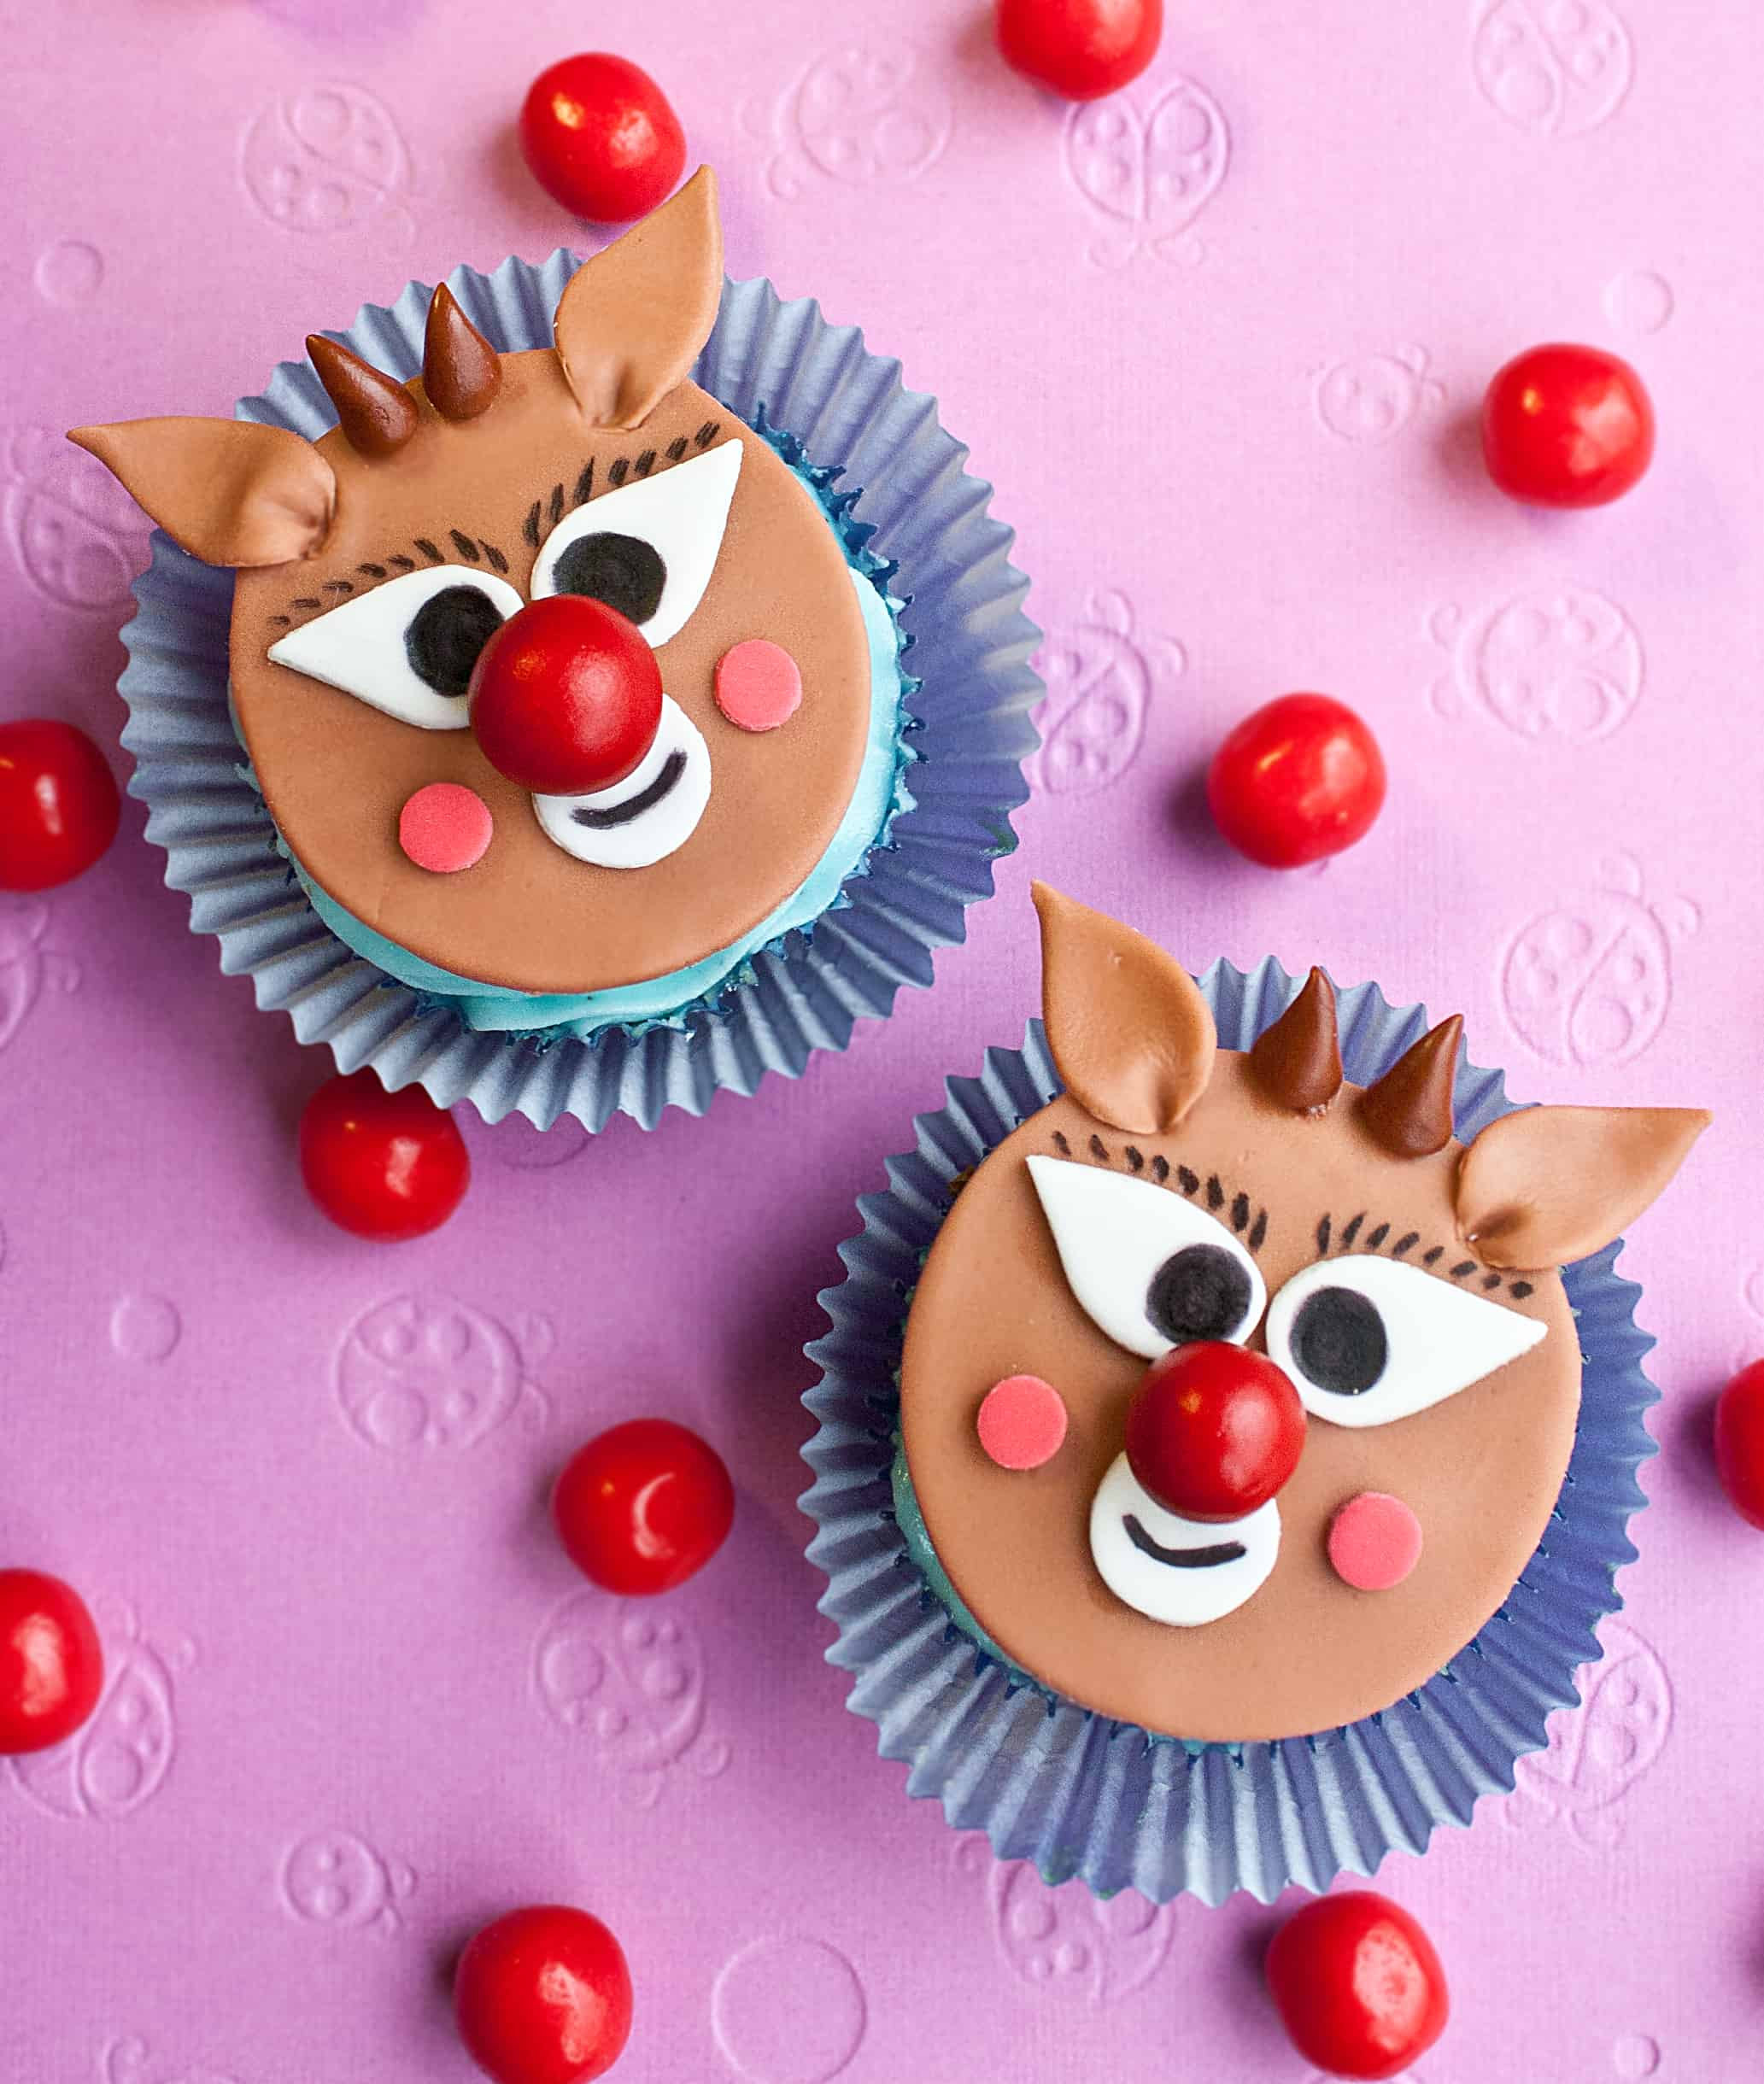 Video: How to make Rudolph cupcake toppers